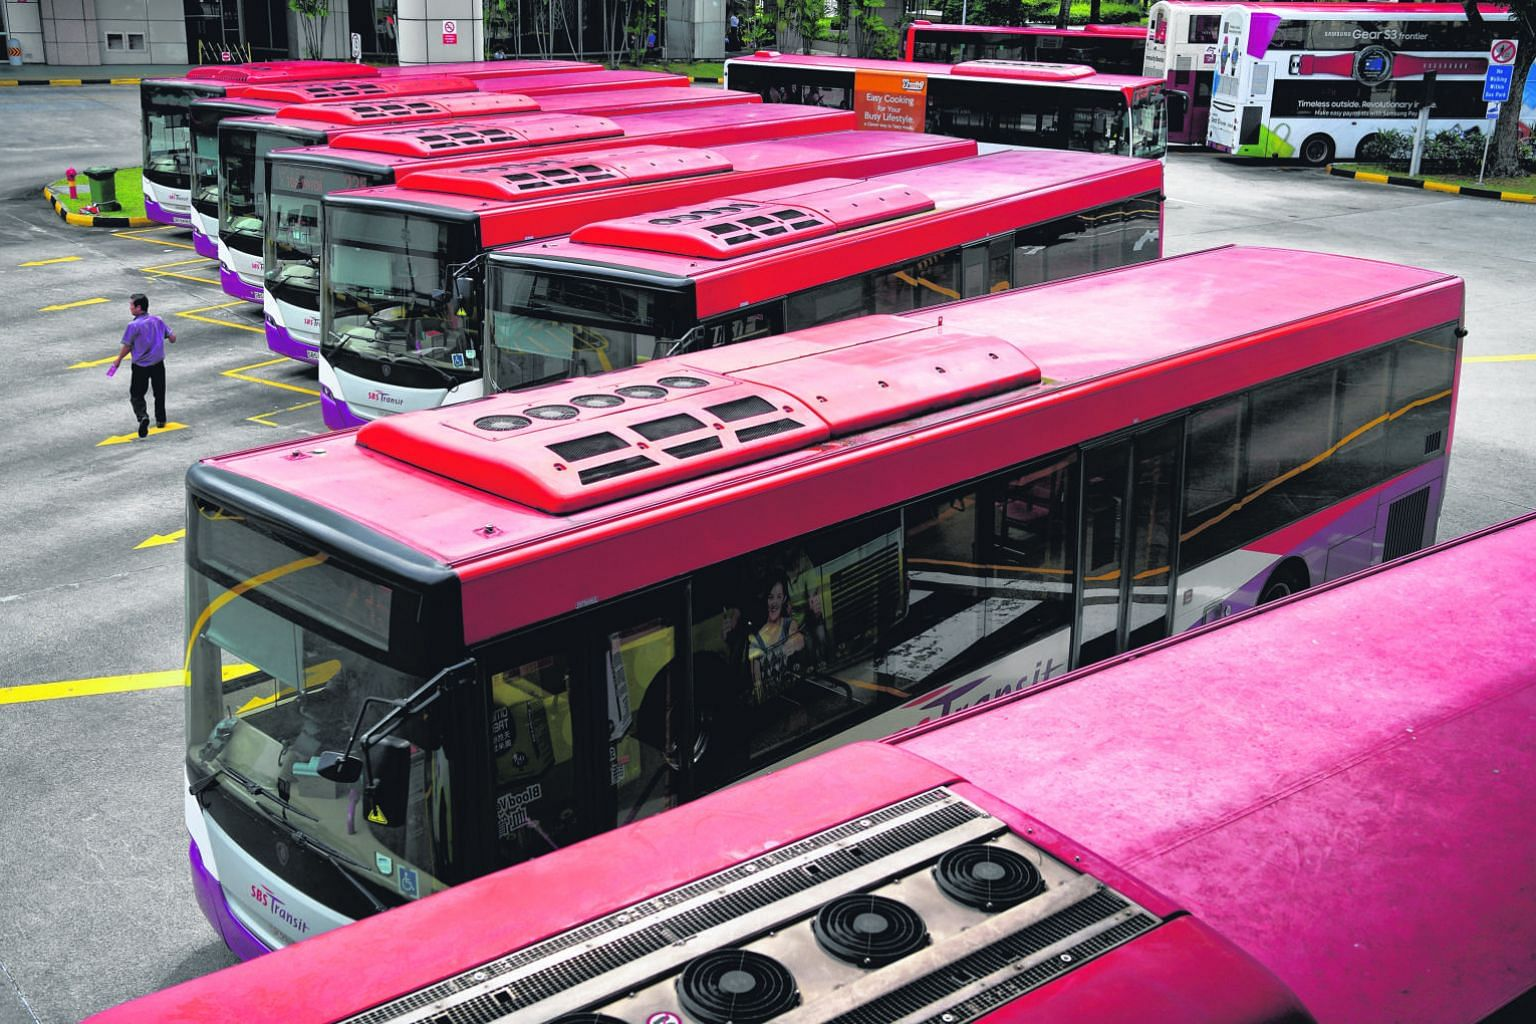 SBS Transit's third-quarter profit increased by 77.5 per cent to $19.7 million, while its revenue rose by 19.1 per cent to $351.4 million.